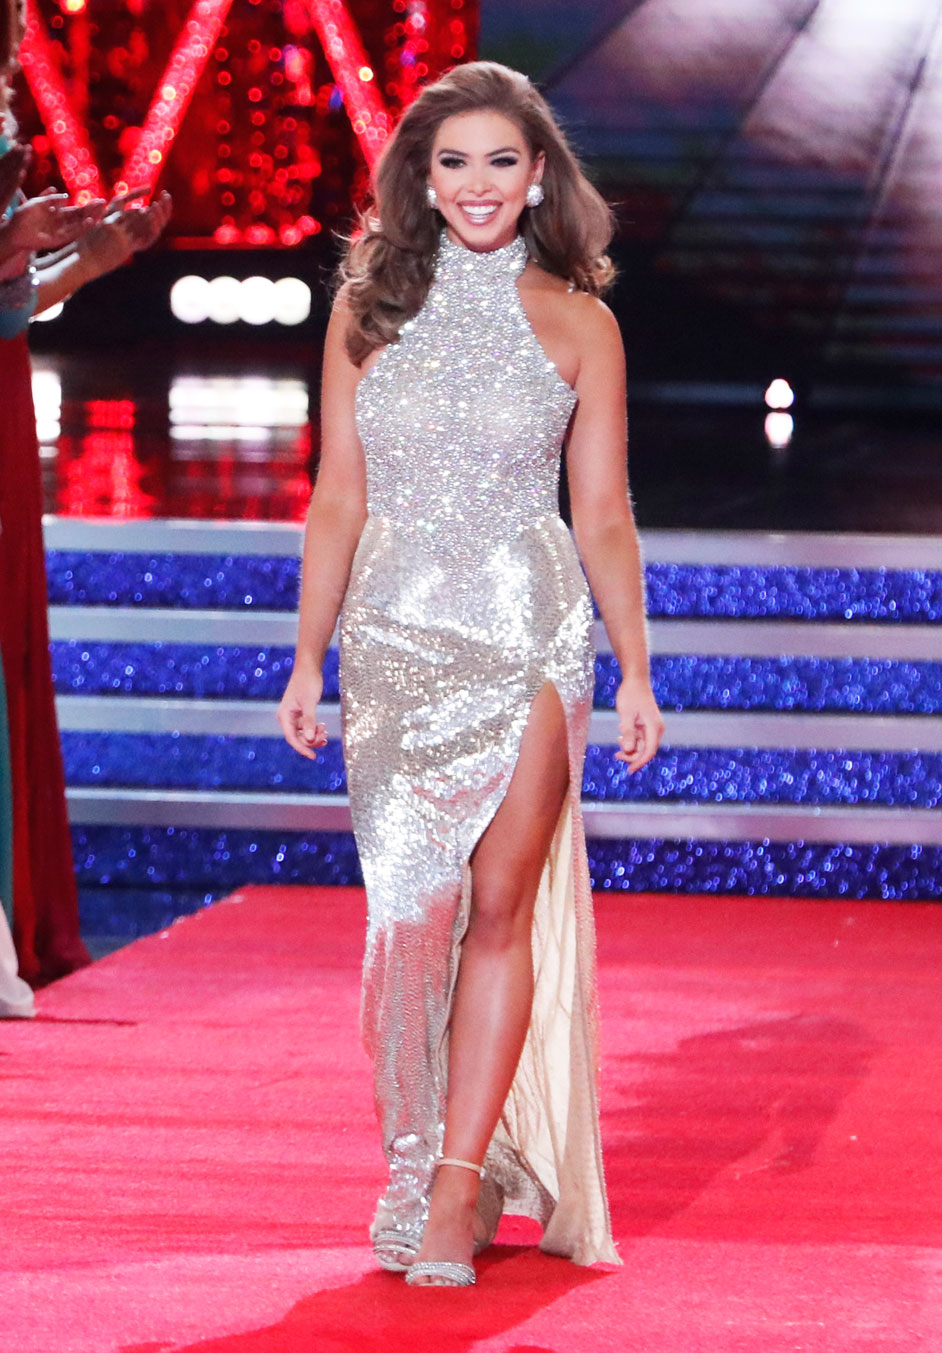 Miss Florida Evening Gown | www.topsimages.com